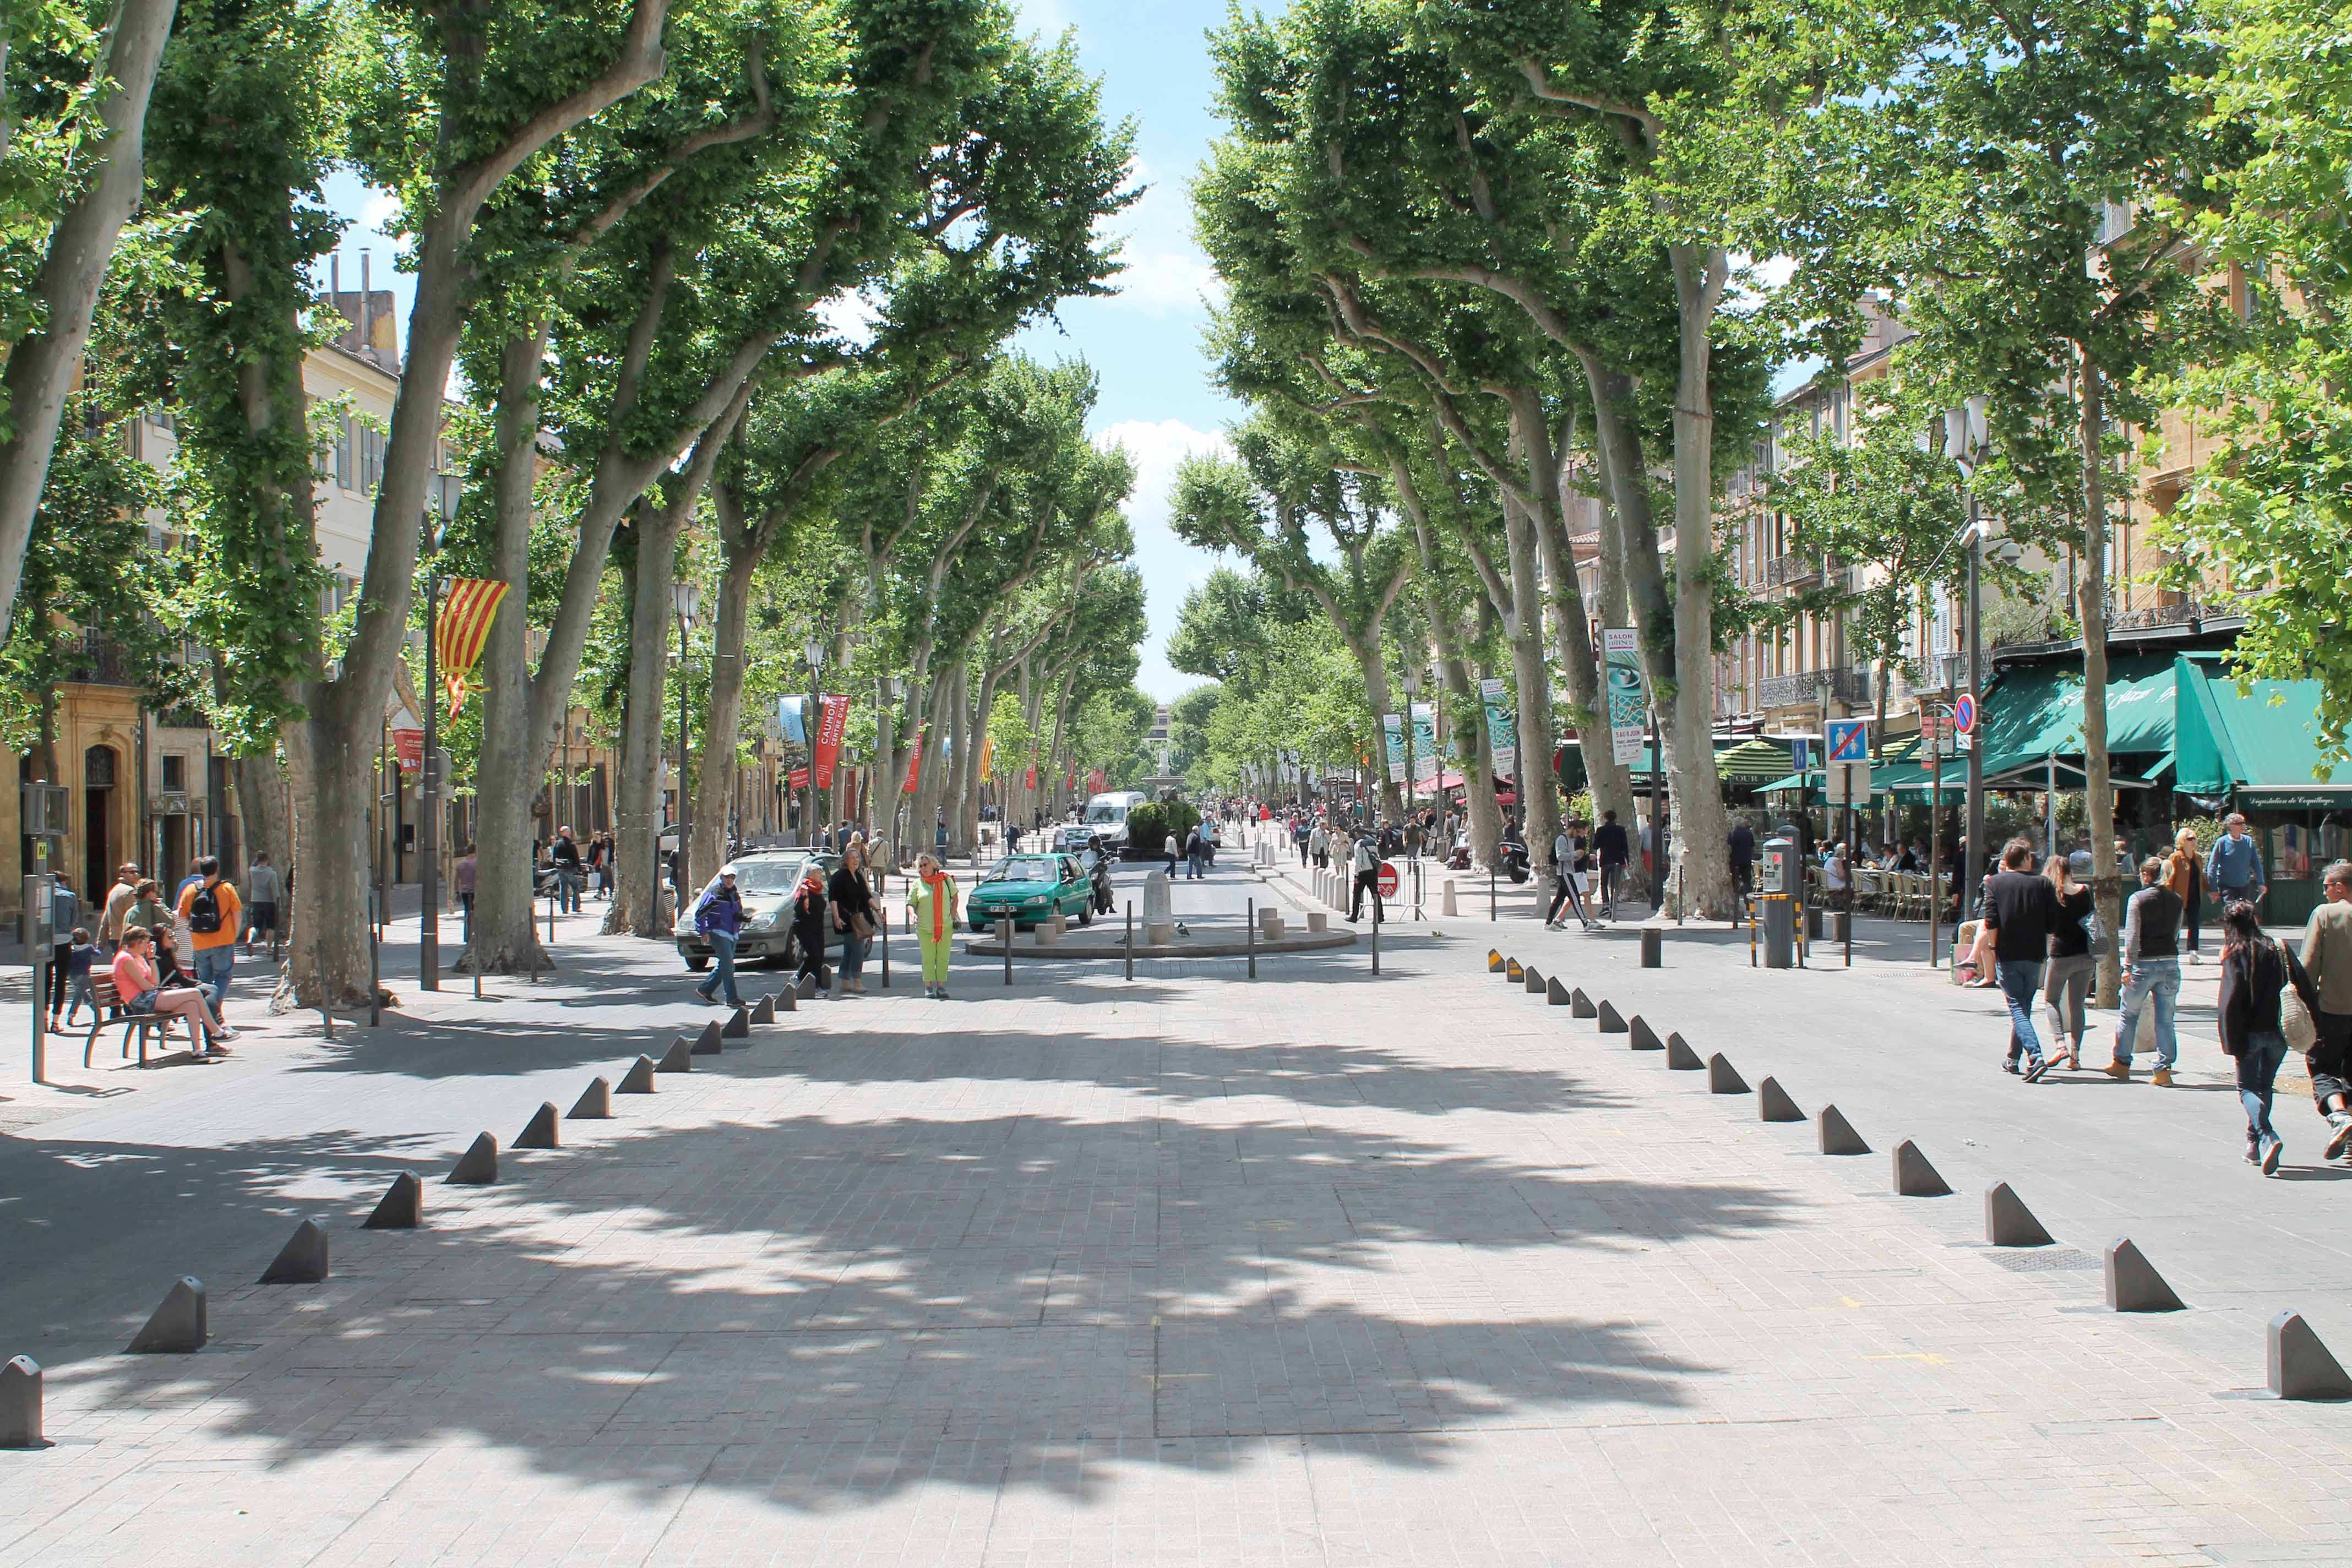 Shore excursion, Cours Mirabeau, Aix en Provence